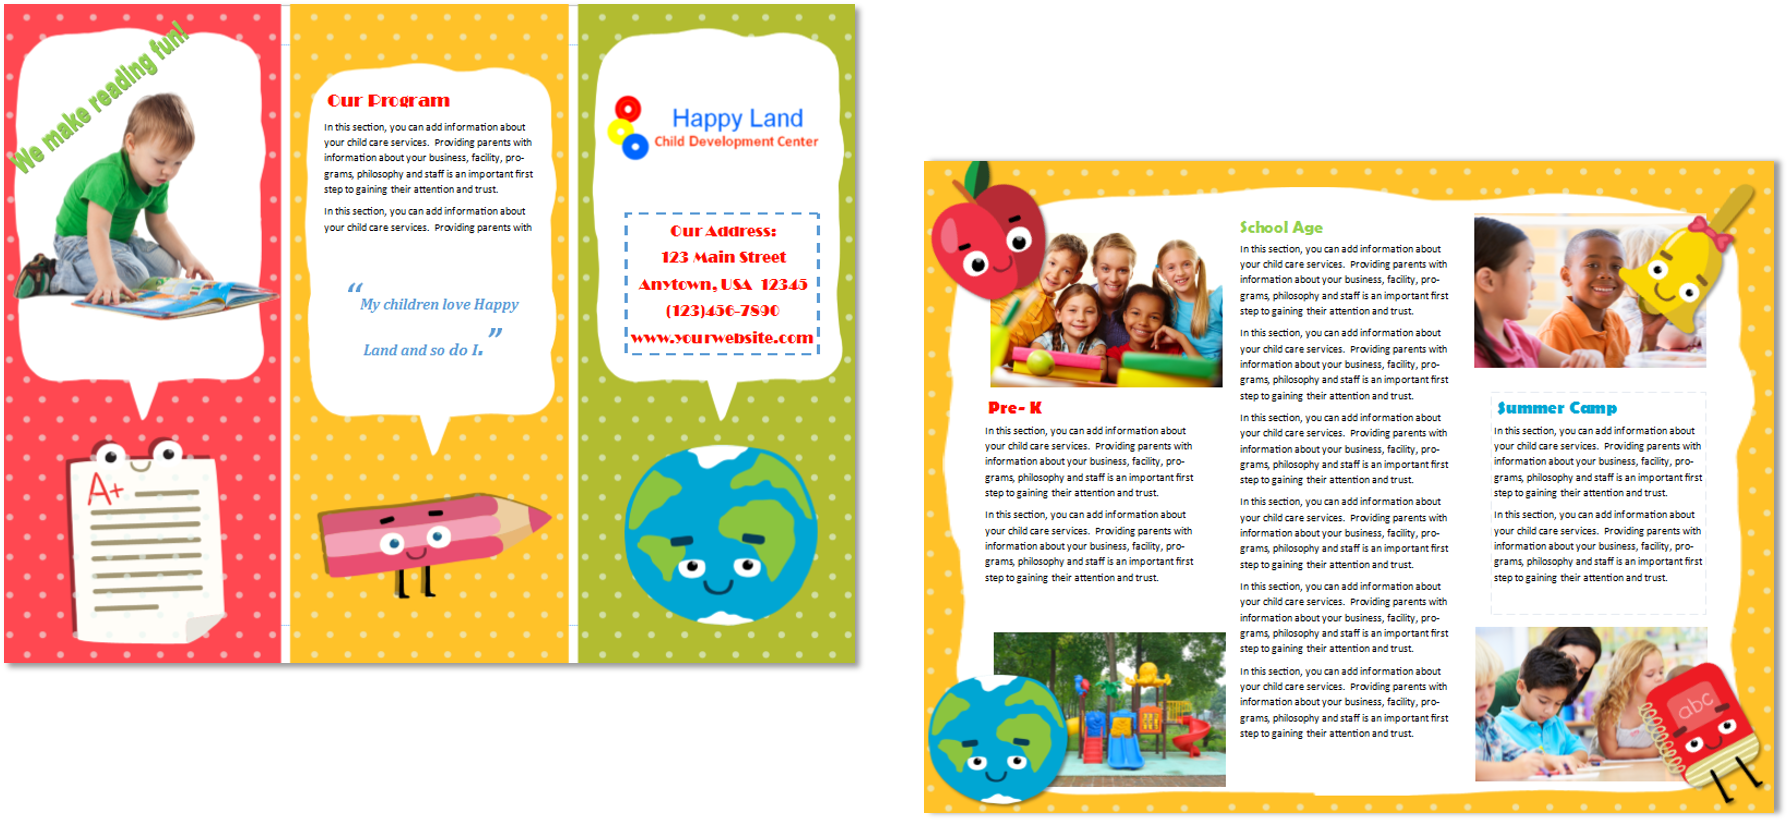 child care advertising examples doc bestfatk daycare advertising examples - Daycare Advertising Examples